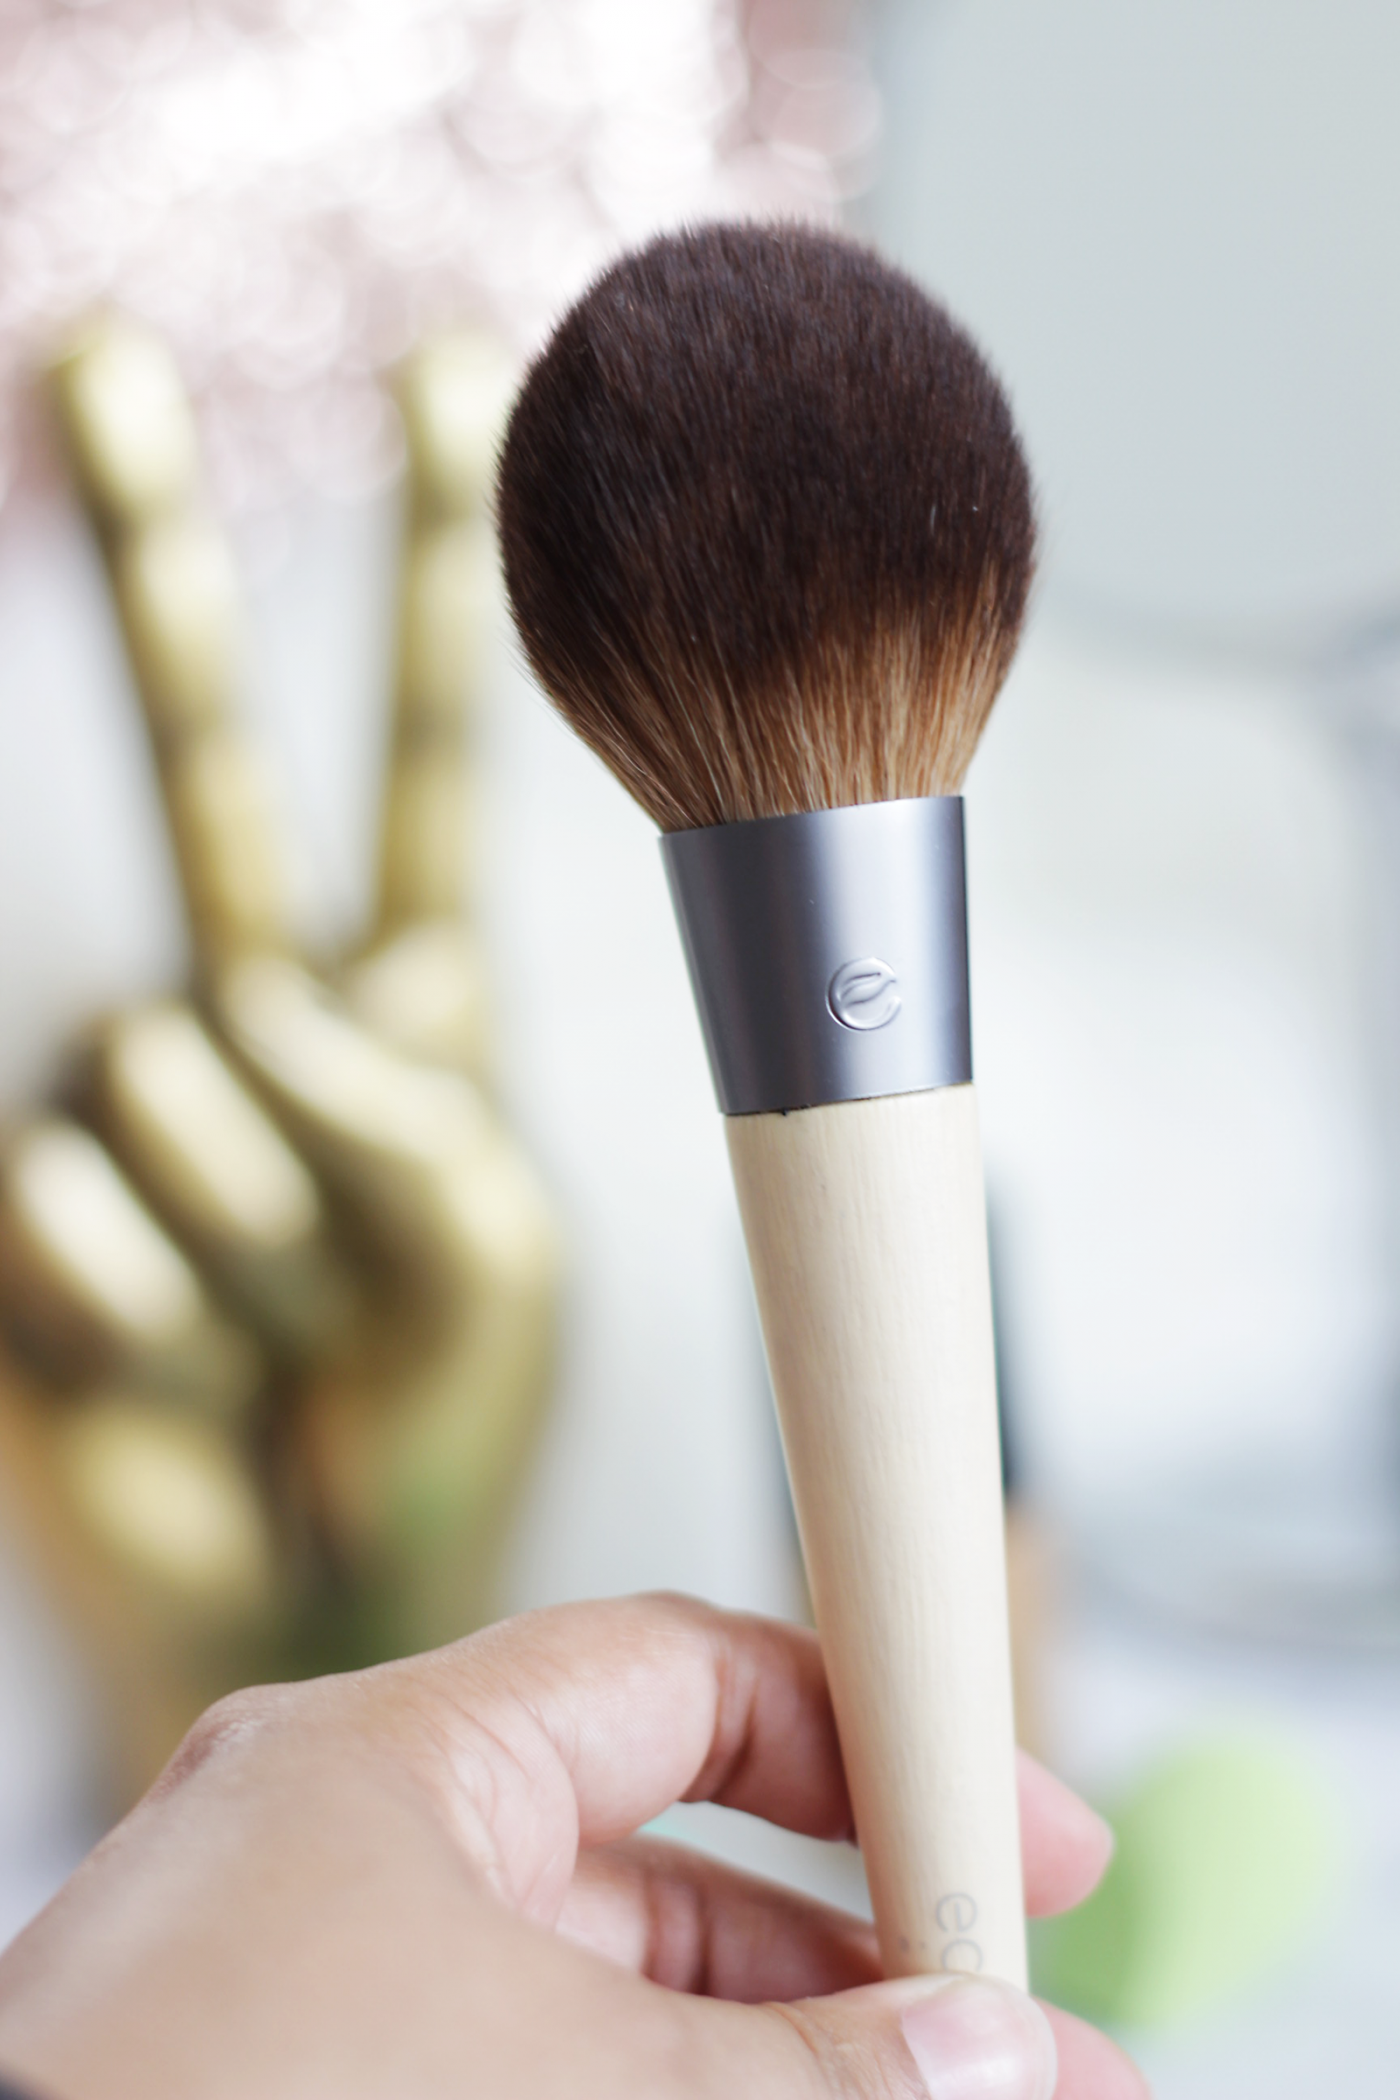 We all love makeup right? But when it comes to brushes we are at times a bit clueless about what brush to use with what? We have you covered, today we are chatting Essential Makeup Brushes and the hows and whys to use them.